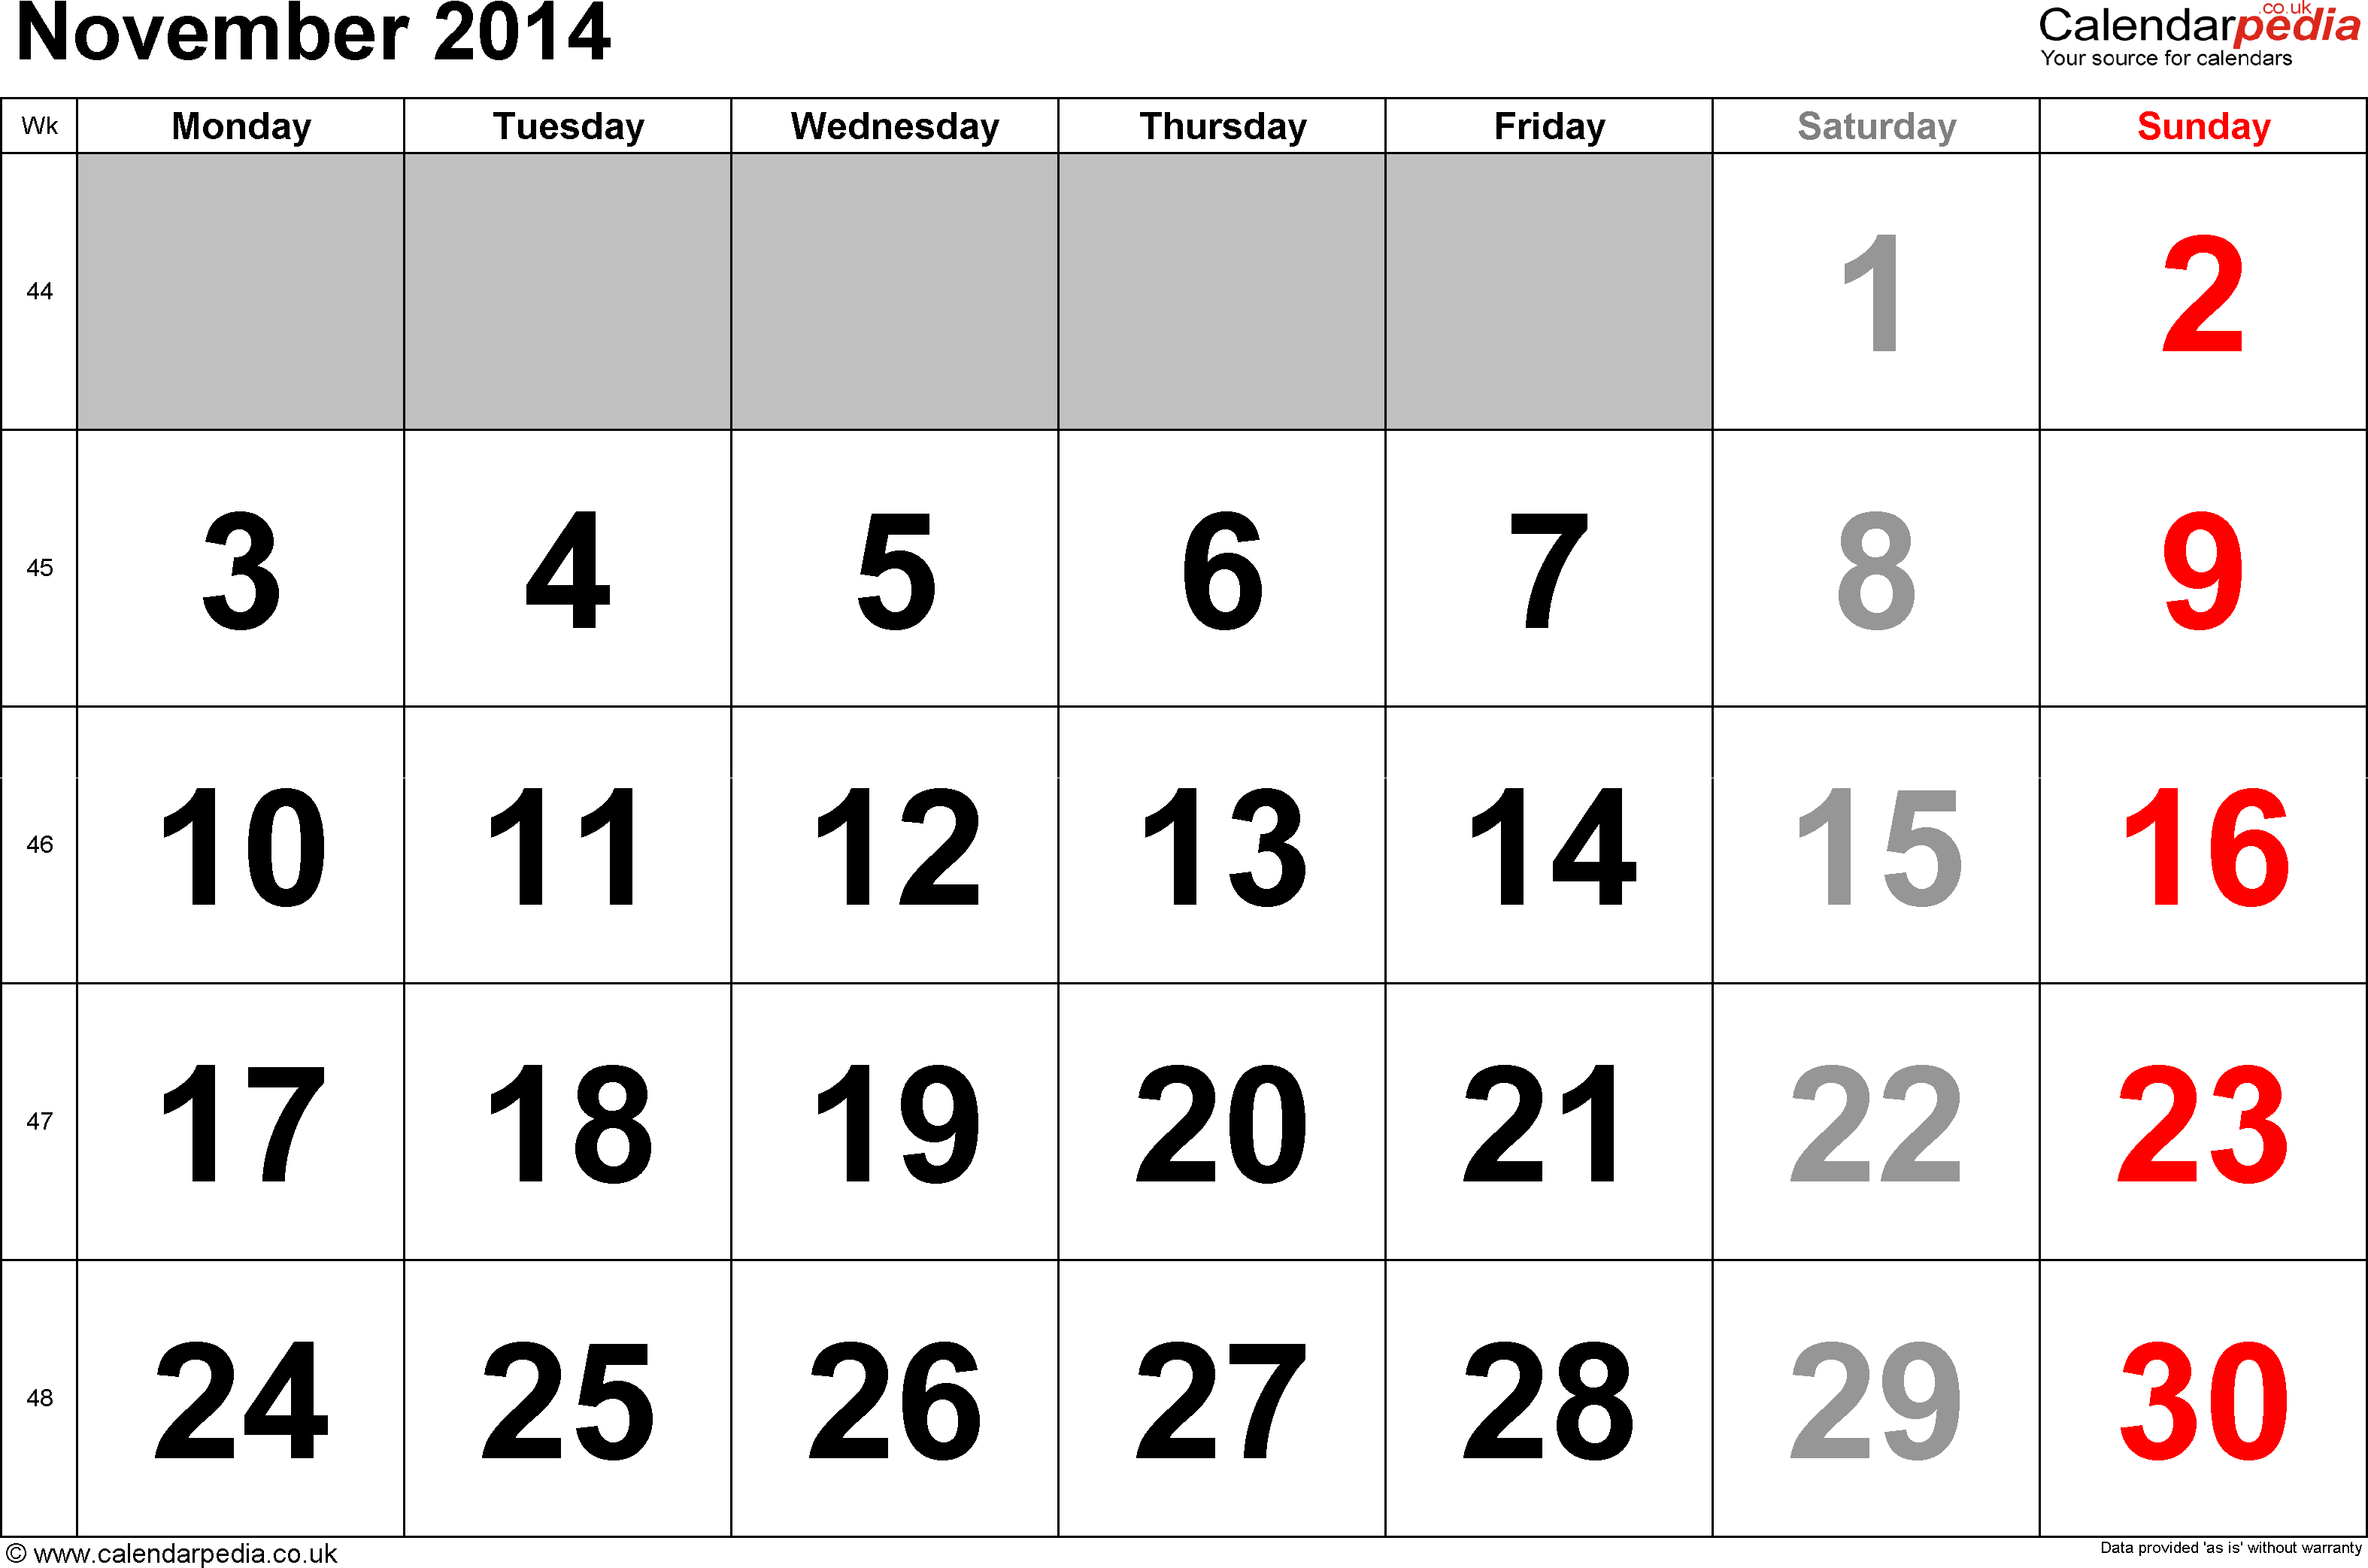 Calendar November 2014, landscape orientation, large numerals, 1 page, with UK bank holidays and week numbers